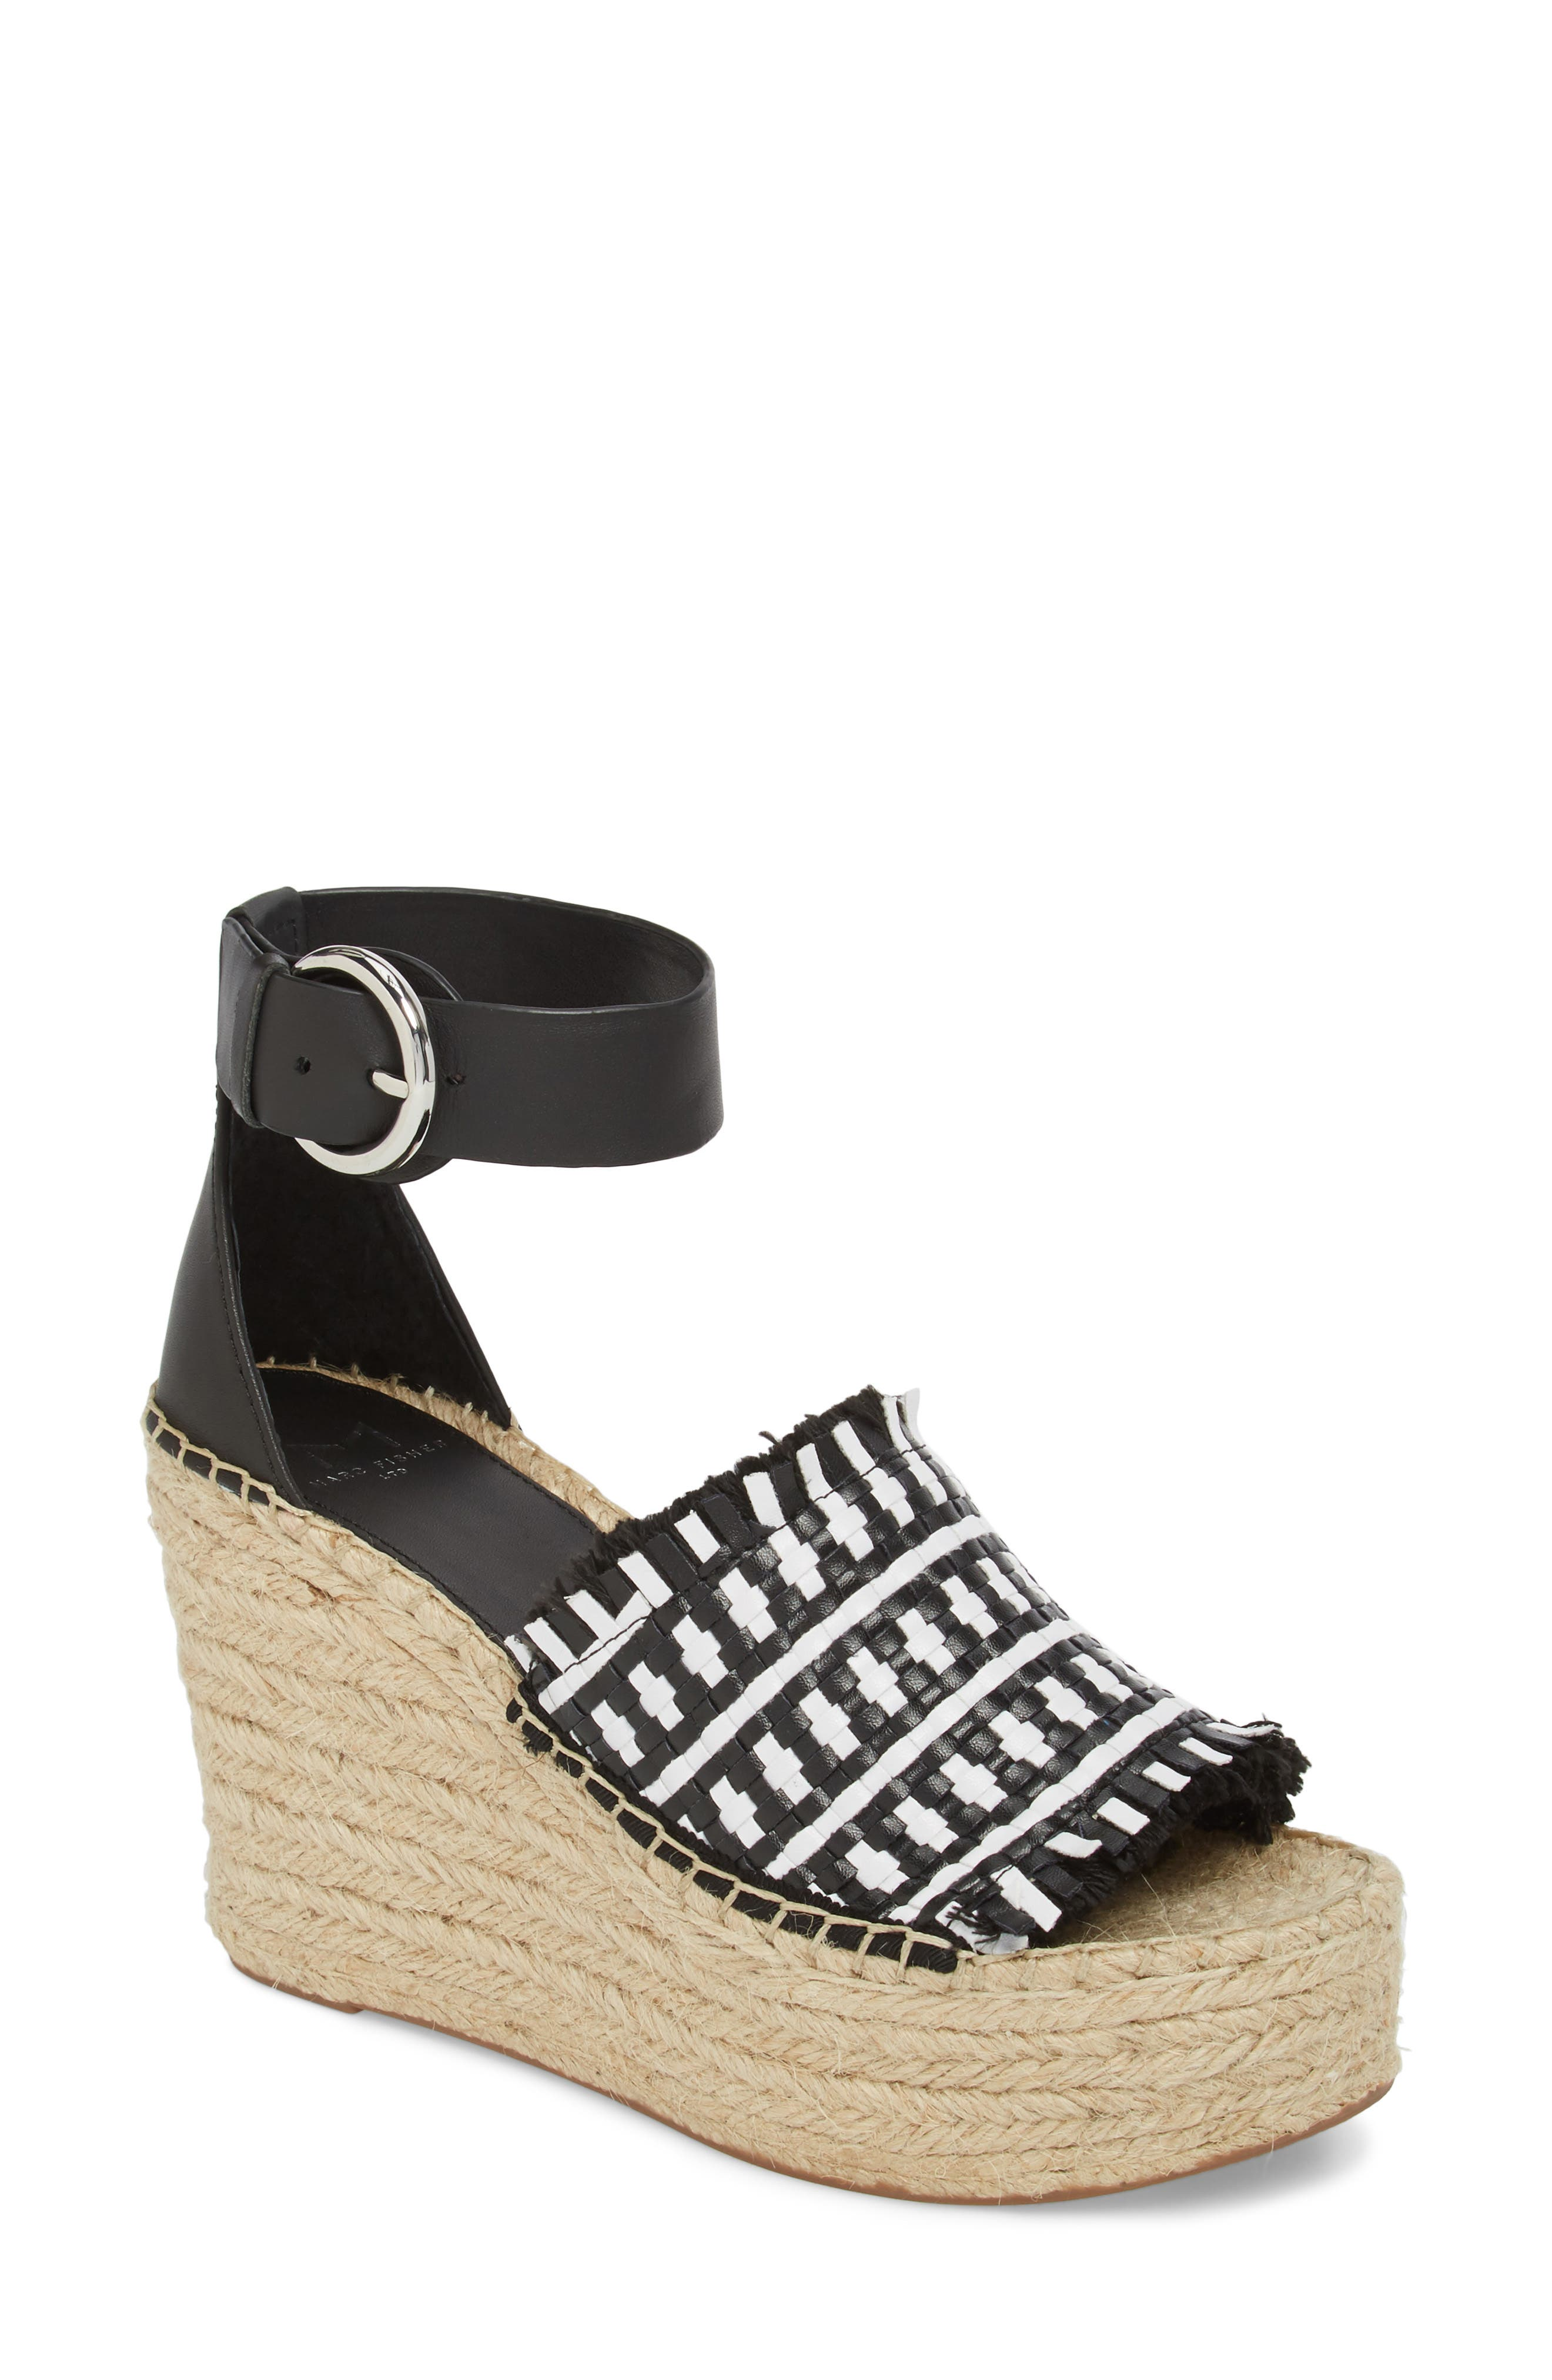 Andrew Espadrille Wedge Sandal,                         Main,                         color, 100